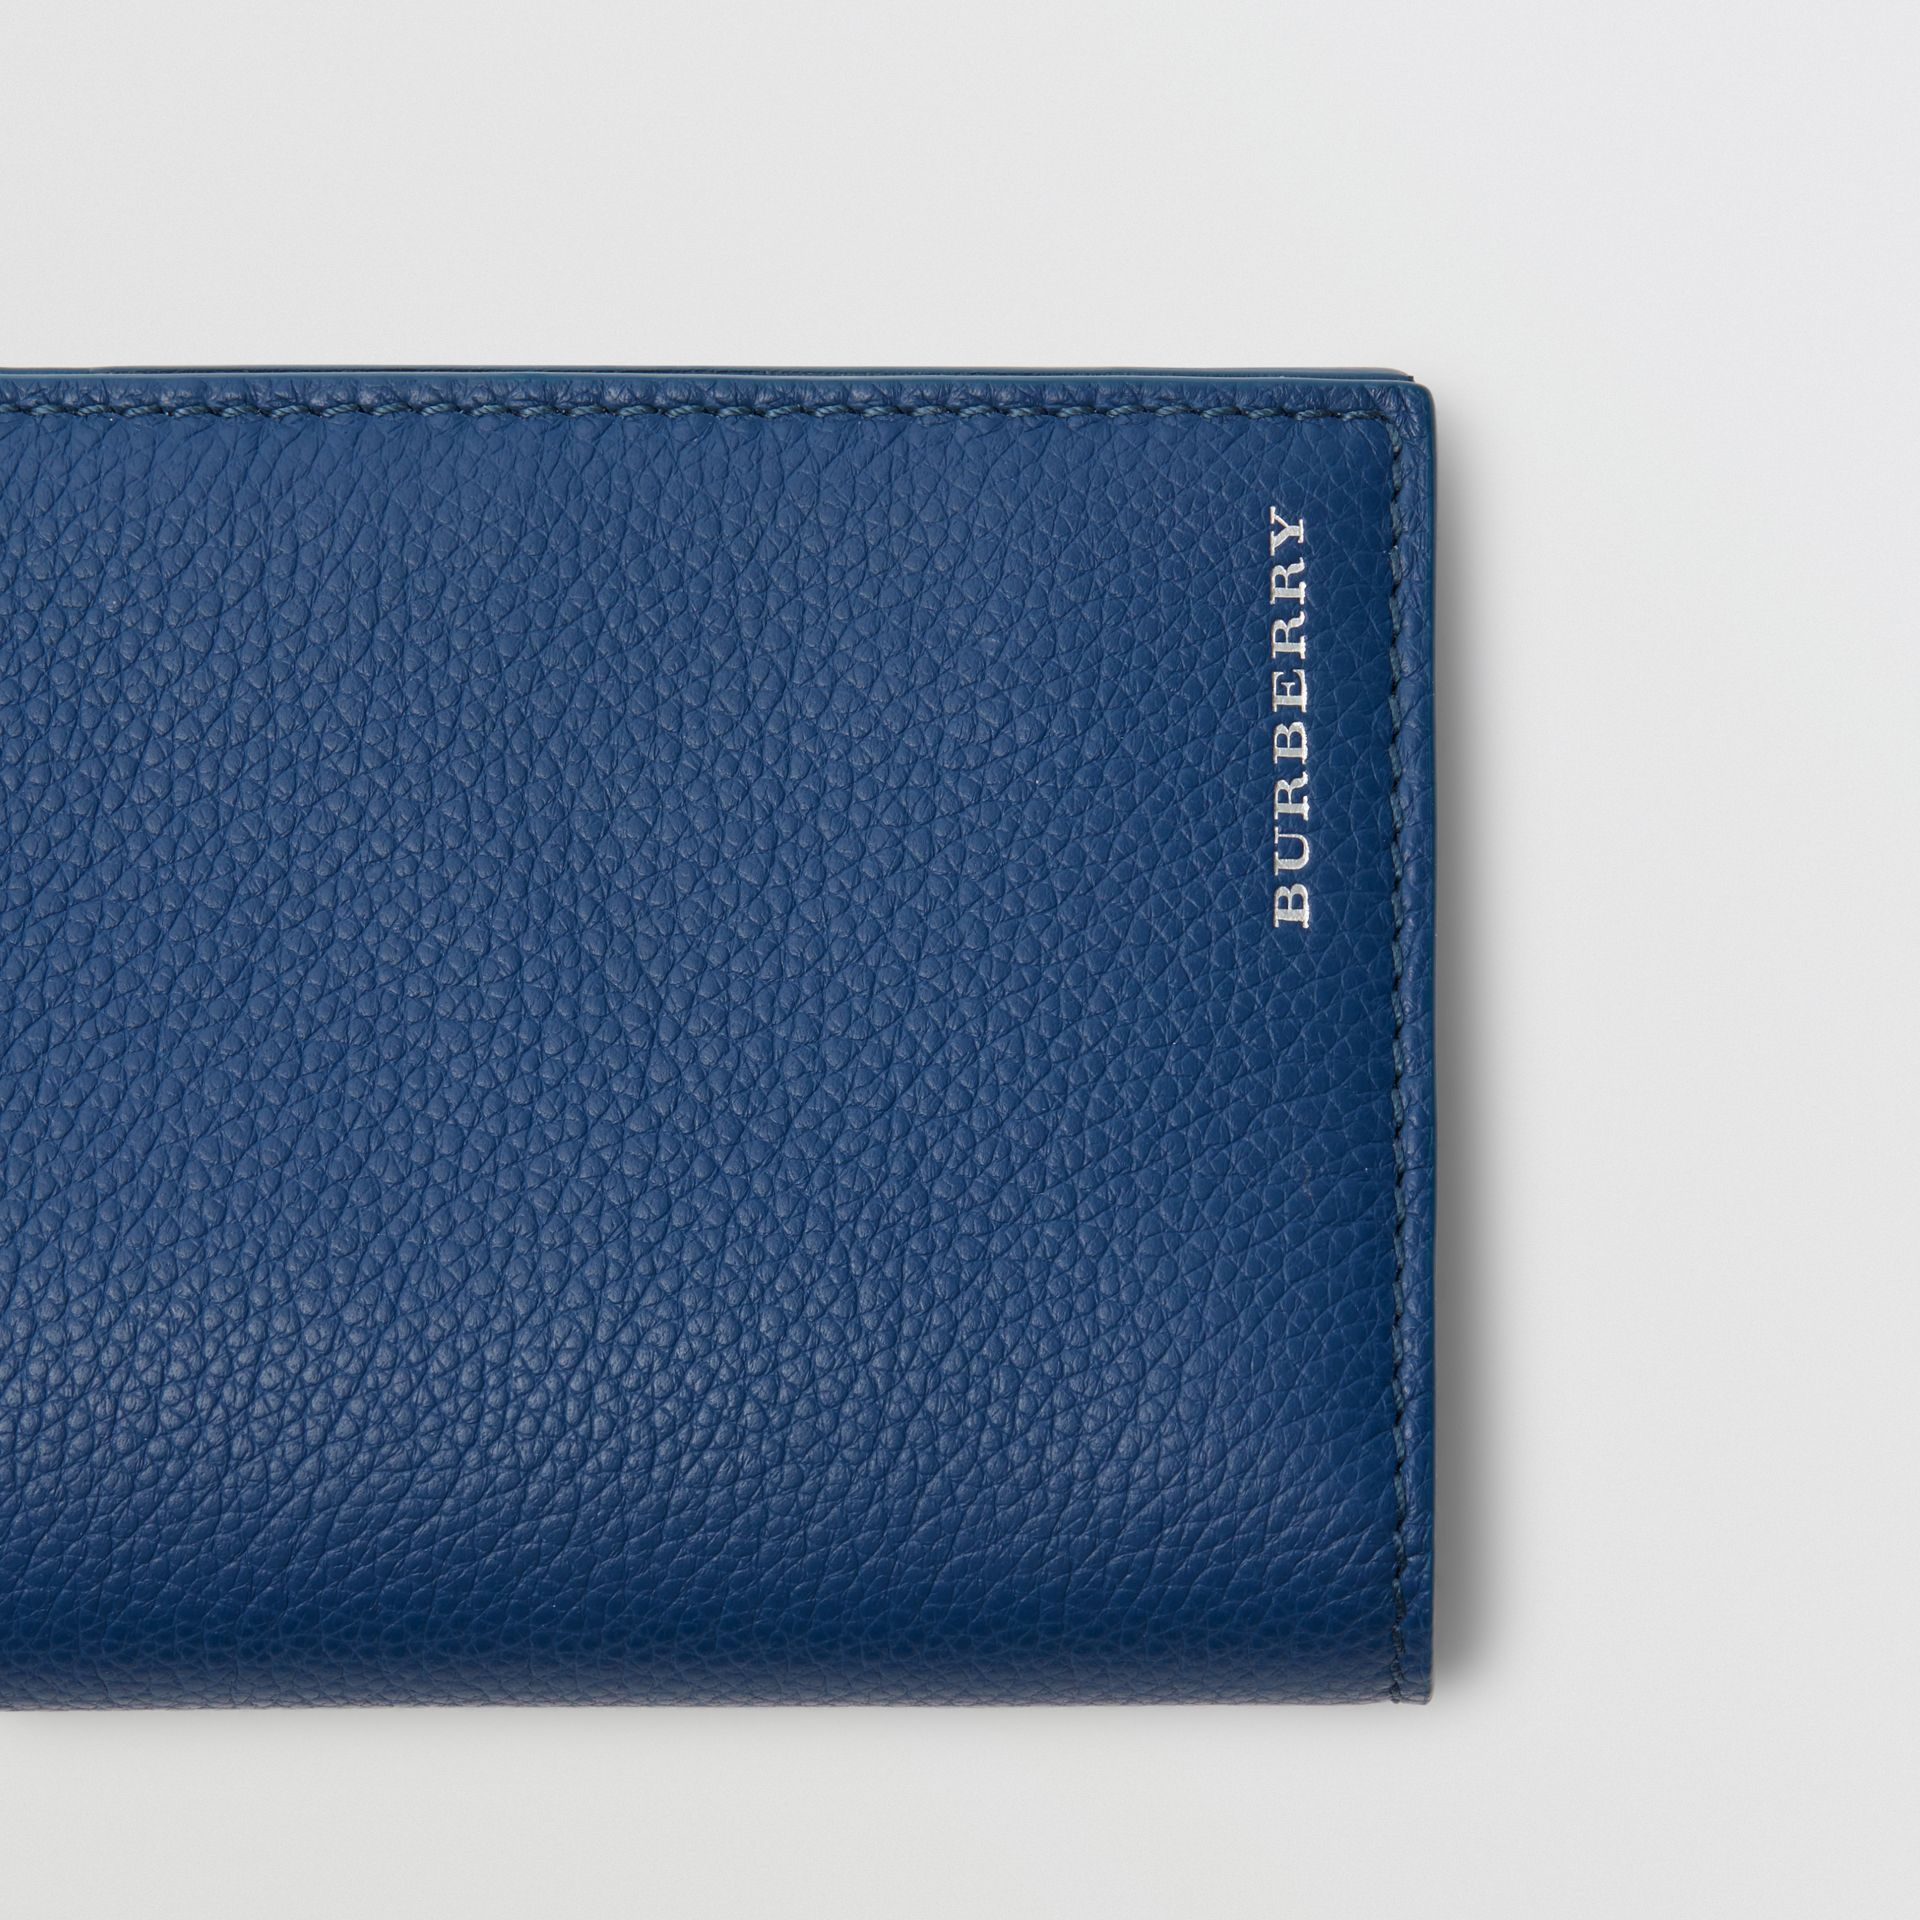 Grainy Leather Continental Wallet in Bright Ultramarine - Men | Burberry - gallery image 1